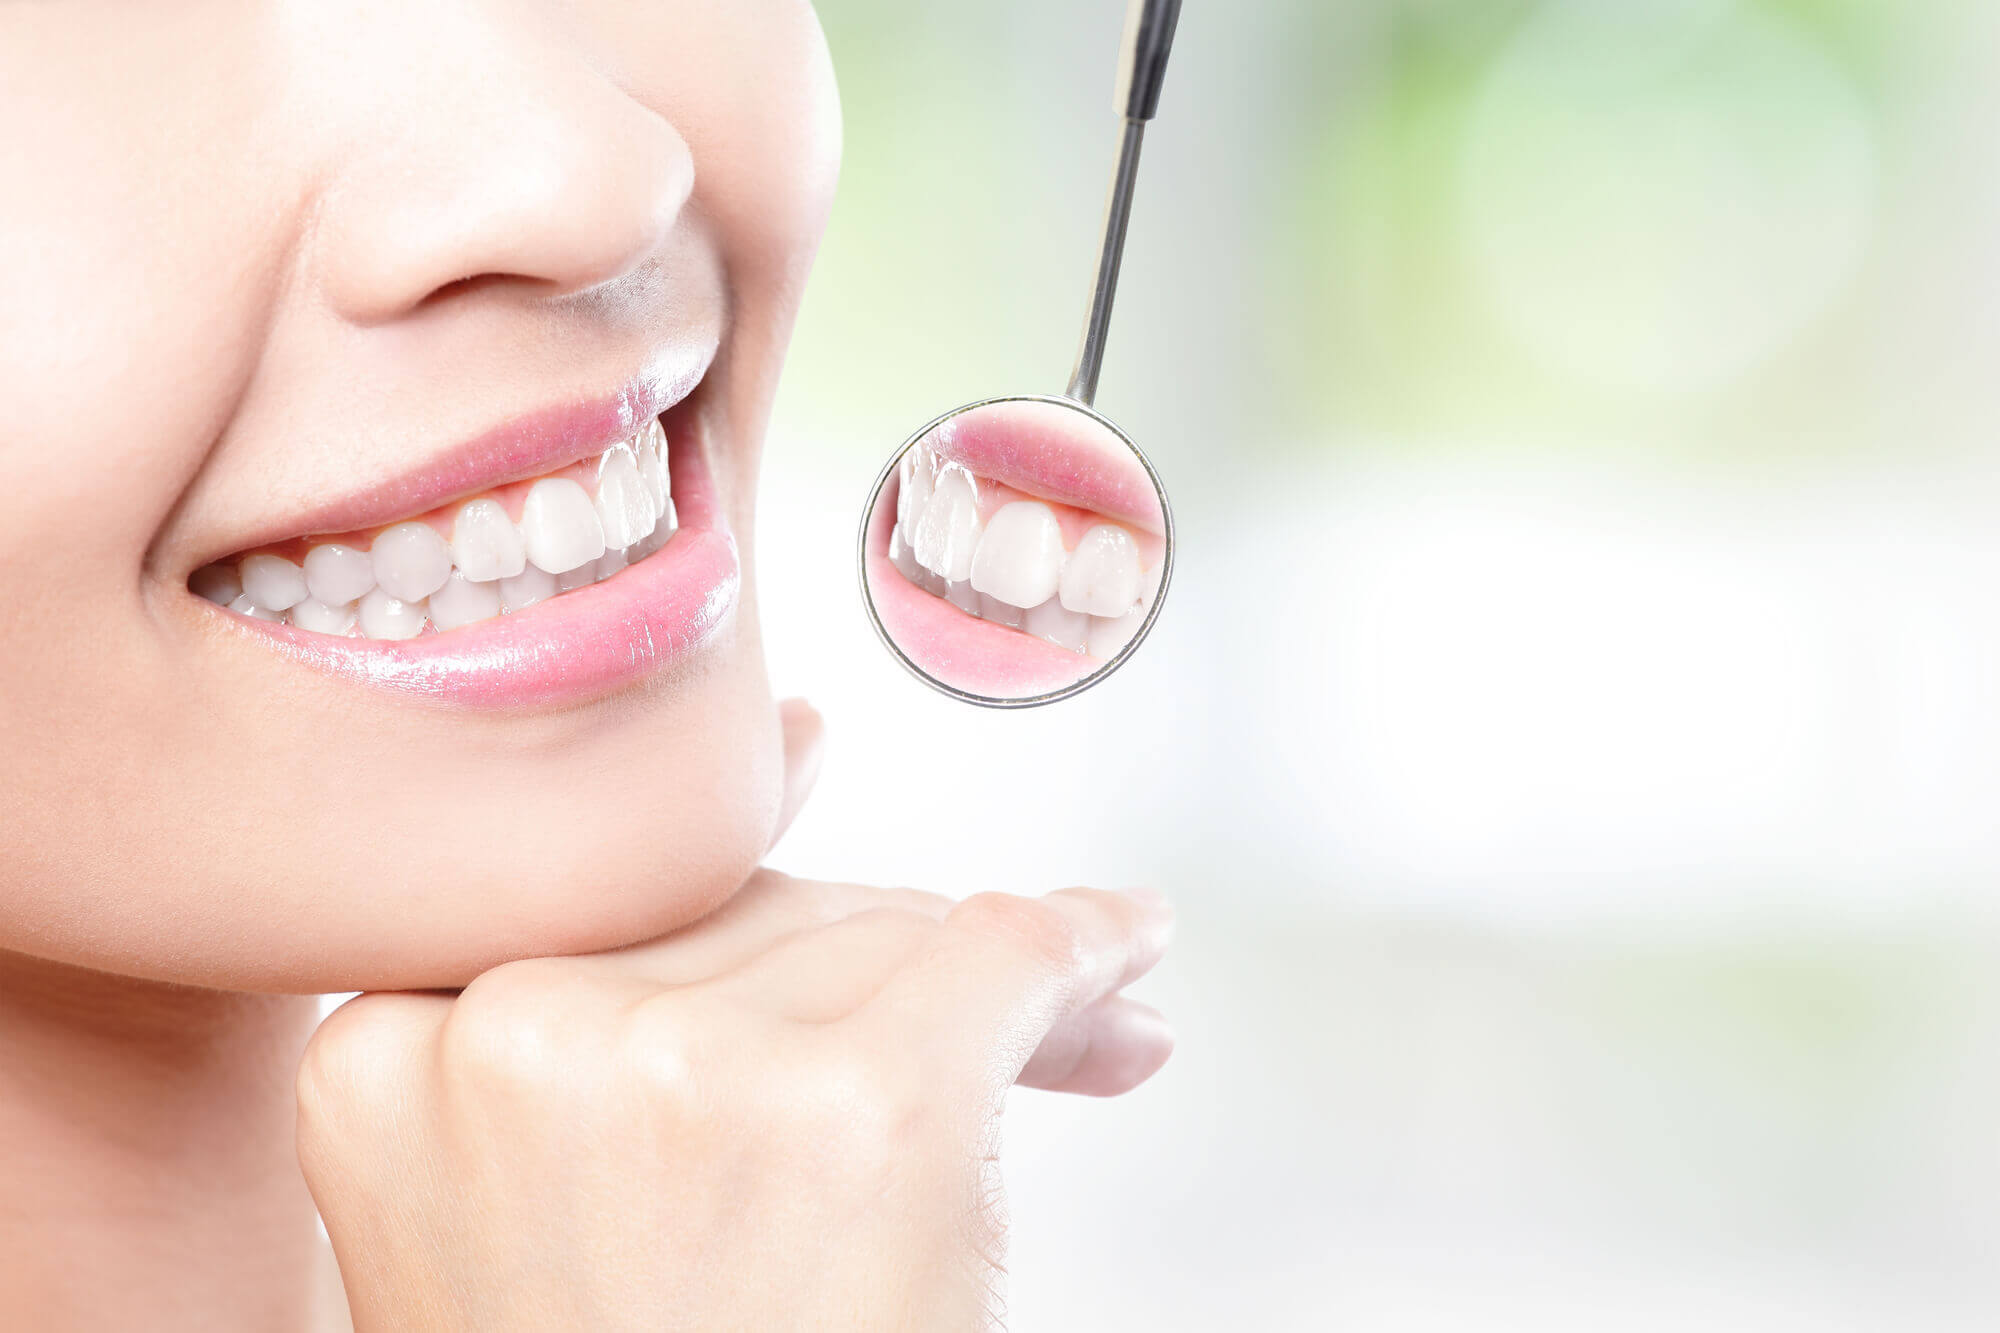 where is the best place to get dental implants sunny isles fl?